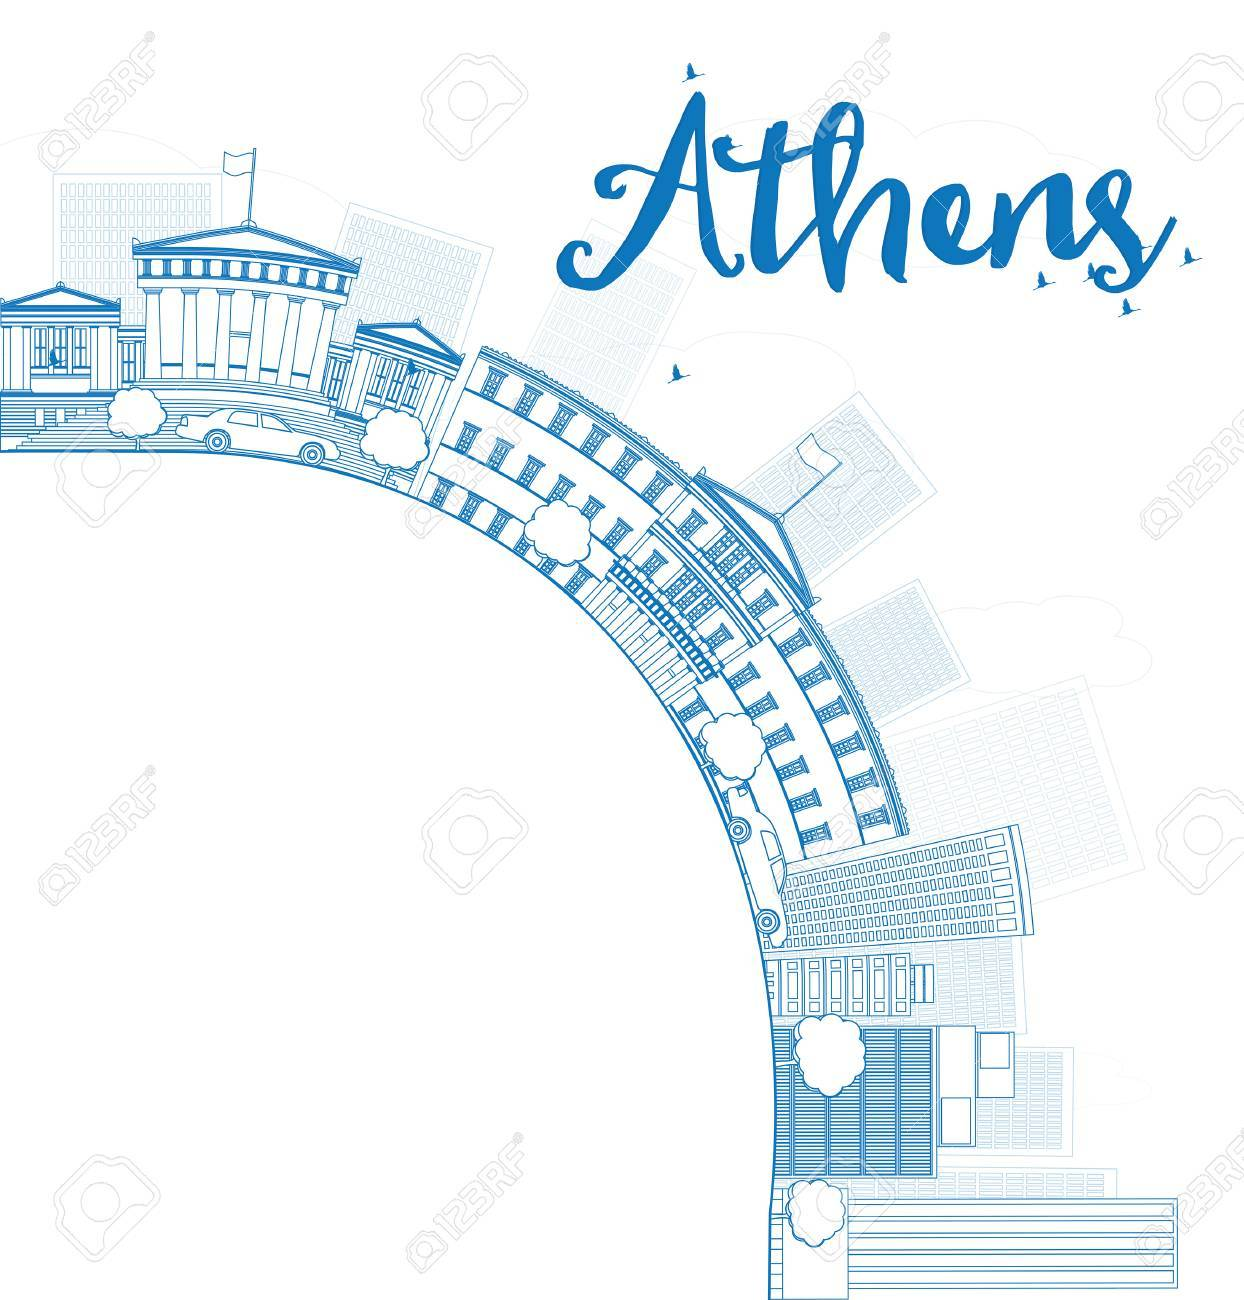 Outline athens skyline with blue buildings and copy space stock vector - Outline Athens Skyline With Blue Buildings And Copy Space Vector Illustration Stock Vector 43084355